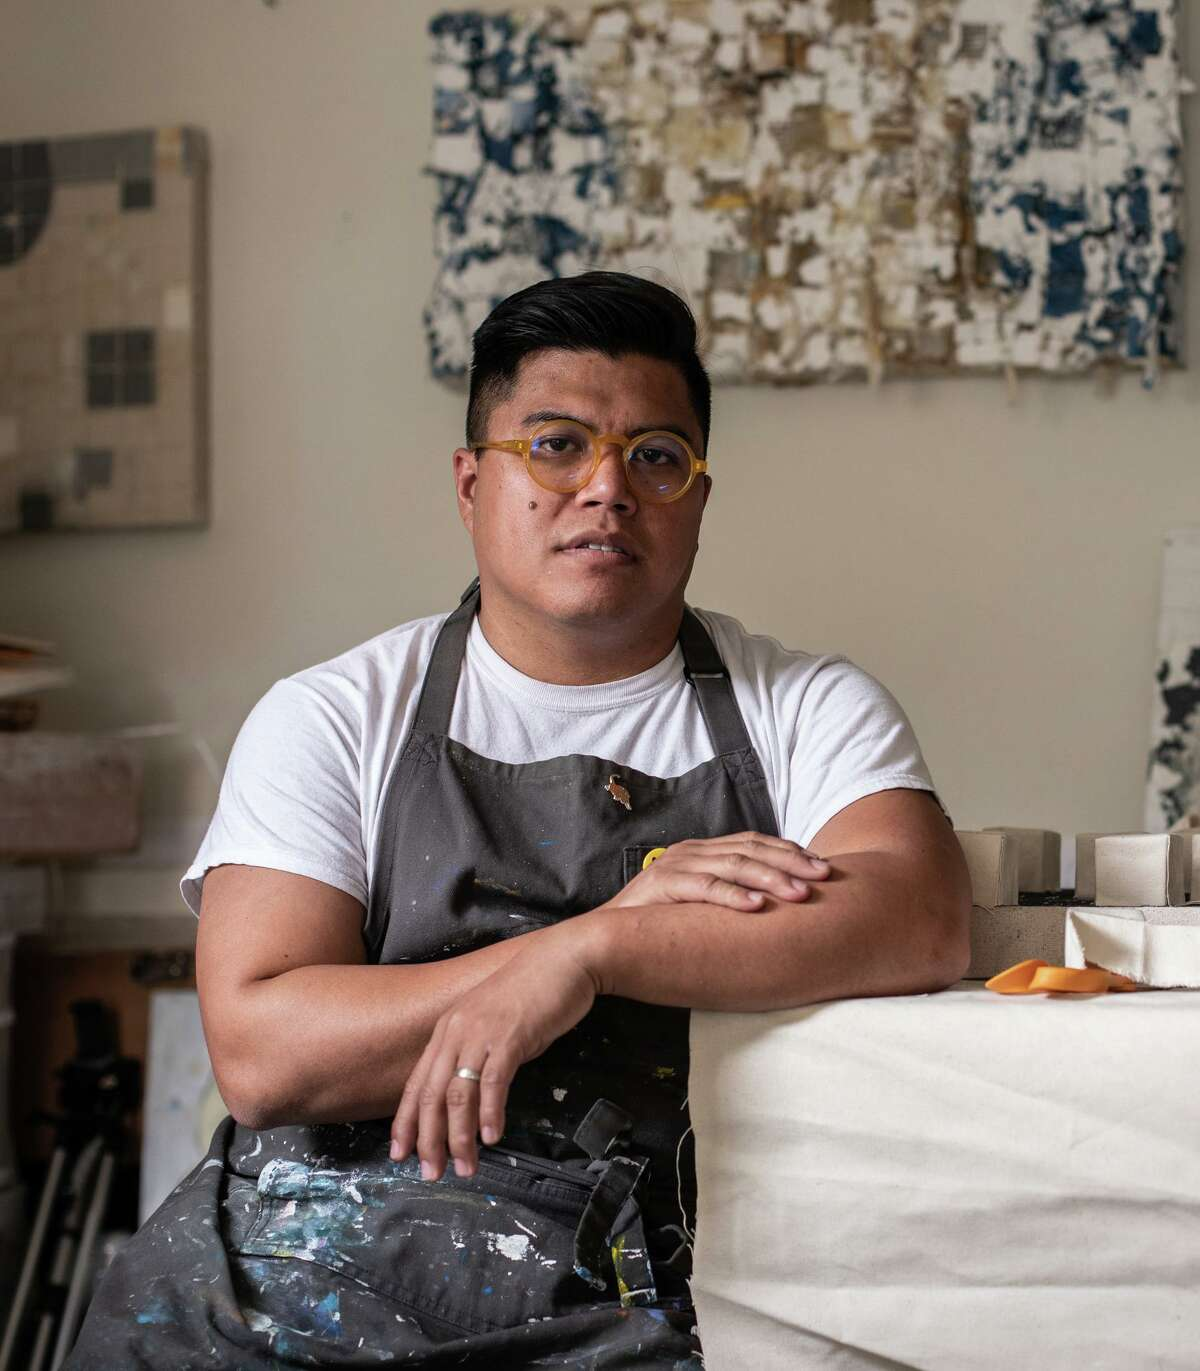 Houston artist Matt Manalo is among the emerging artists featured at the McNay Art Museum as part of the 2021 Texas Biennial exhibition.